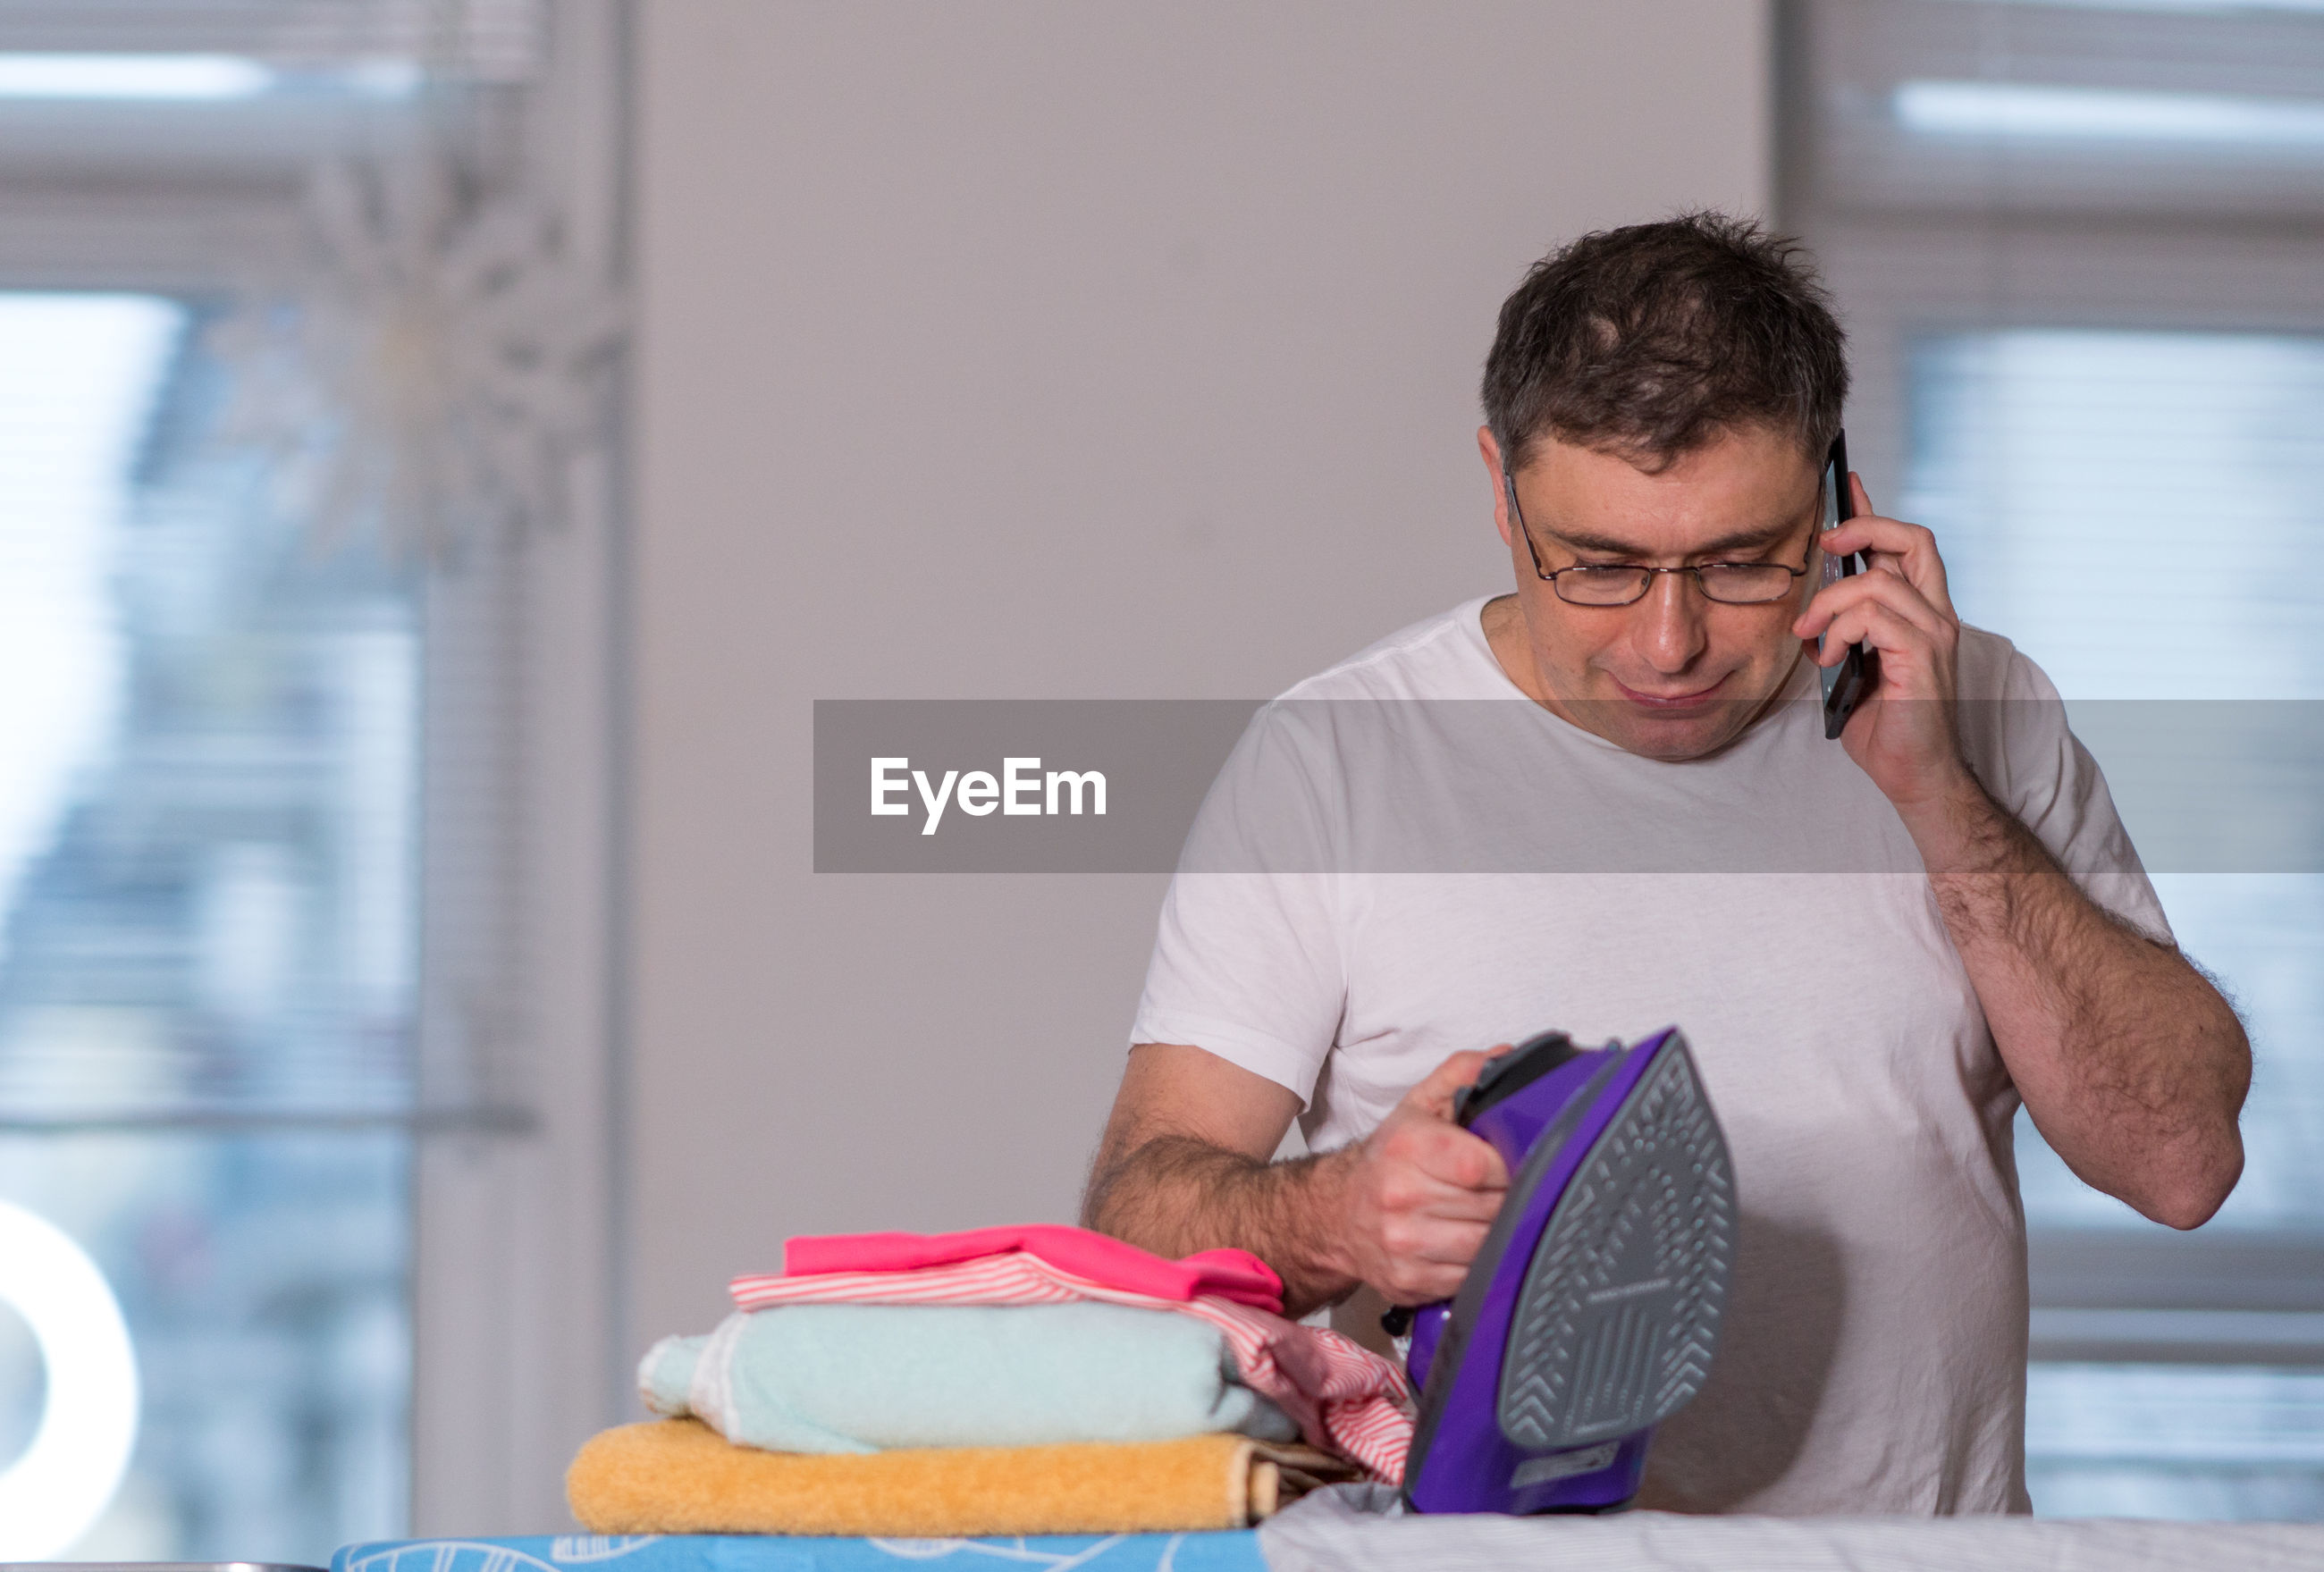 Man talking on phone while holding iron at home